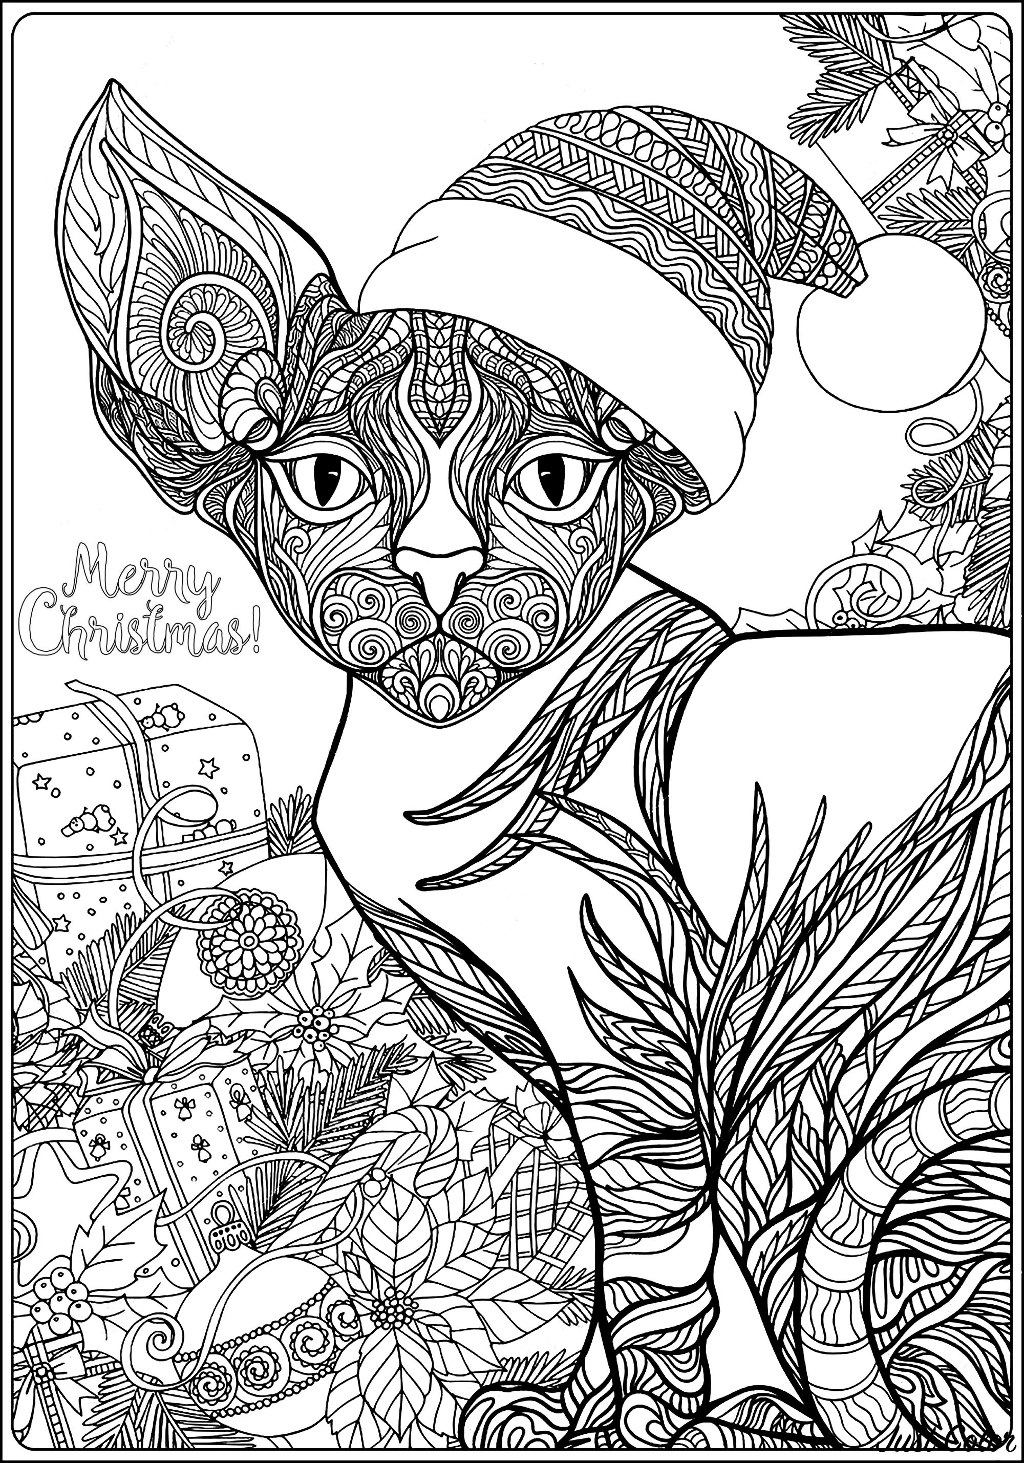 cat christmas coloring pages page de coloriage chat noël image vectorielle malyaka cat coloring pages christmas